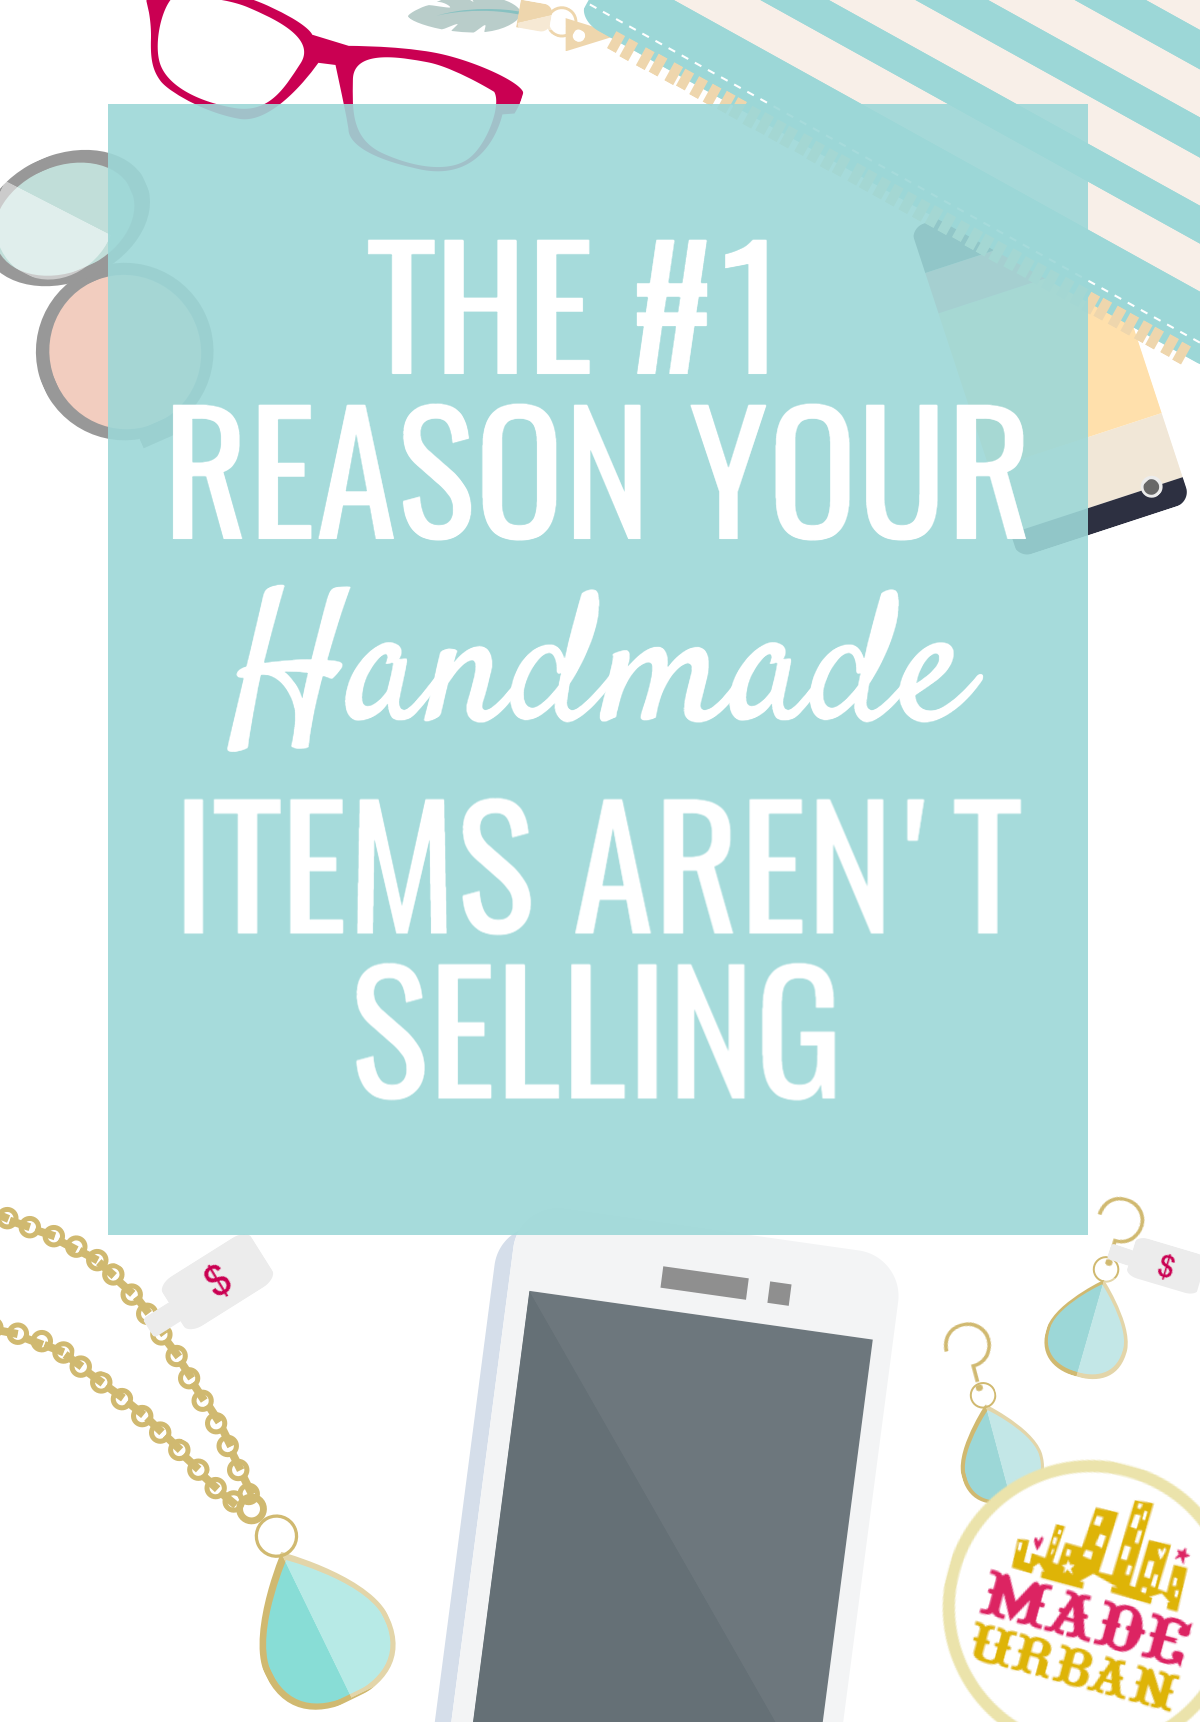 You're listing your handmade products online, sharing on social media and setting up at craft shows but they aren't selling. Here's why.